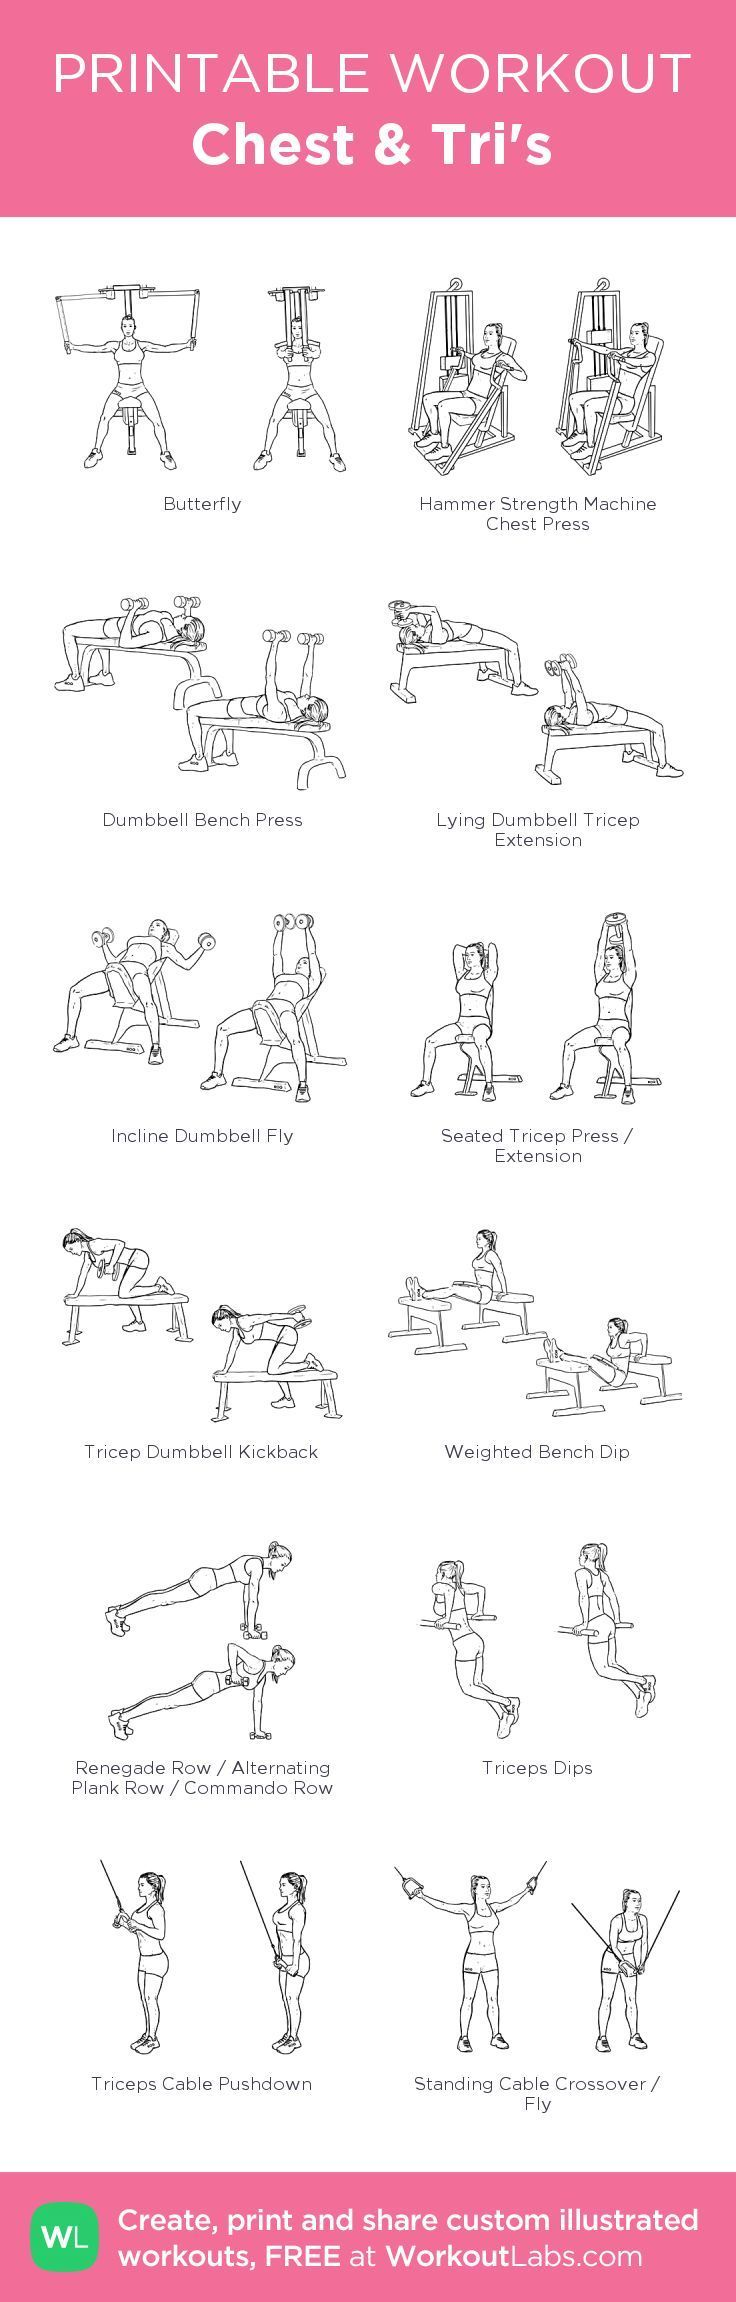 Chest Tris: my custom printable workout by @WorkoutLabs #workoutlabs #customworkout